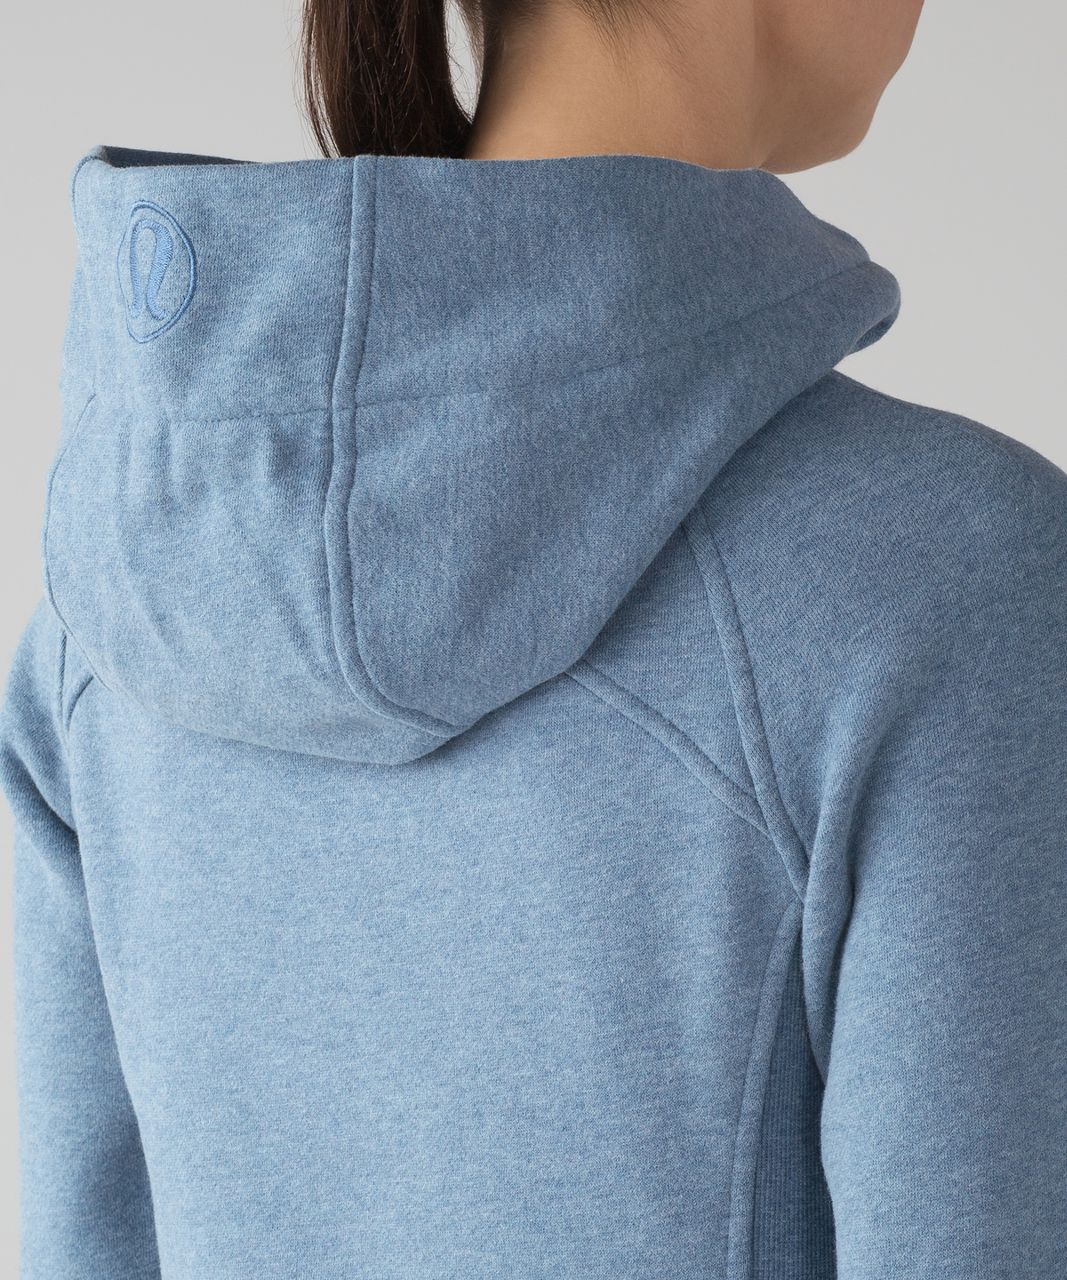 Lululemon Scuba Hoodie *Light Cotton Fleece - Heathered Illuminight / Illuminight